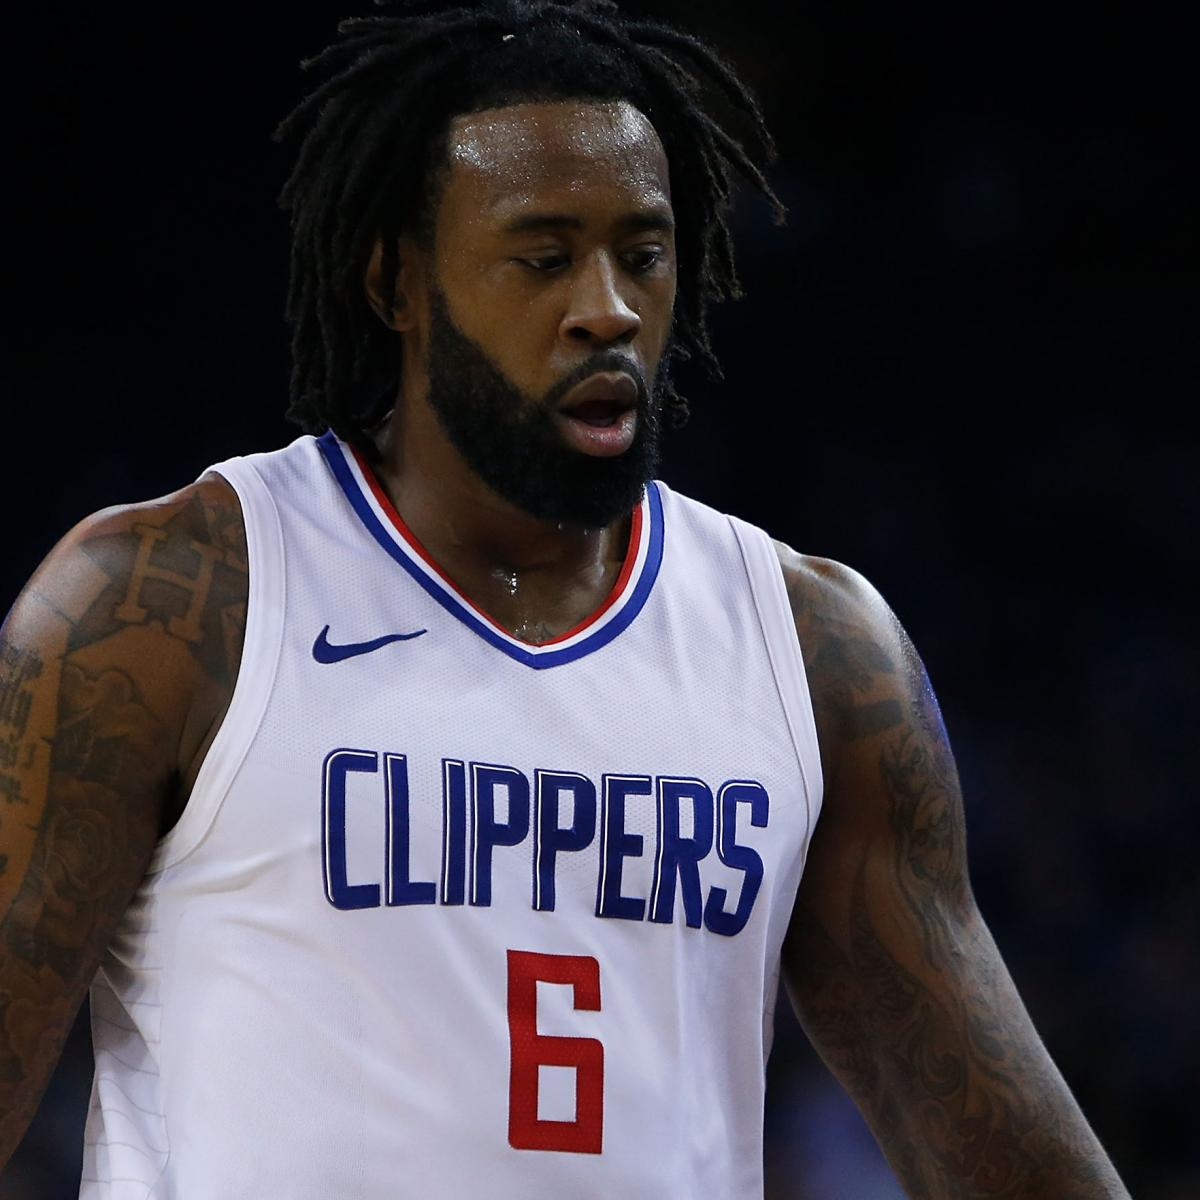 Denver Nuggets Predictions: Los Angeles Clippers Vs. Denver Nuggets Odds, Analysis